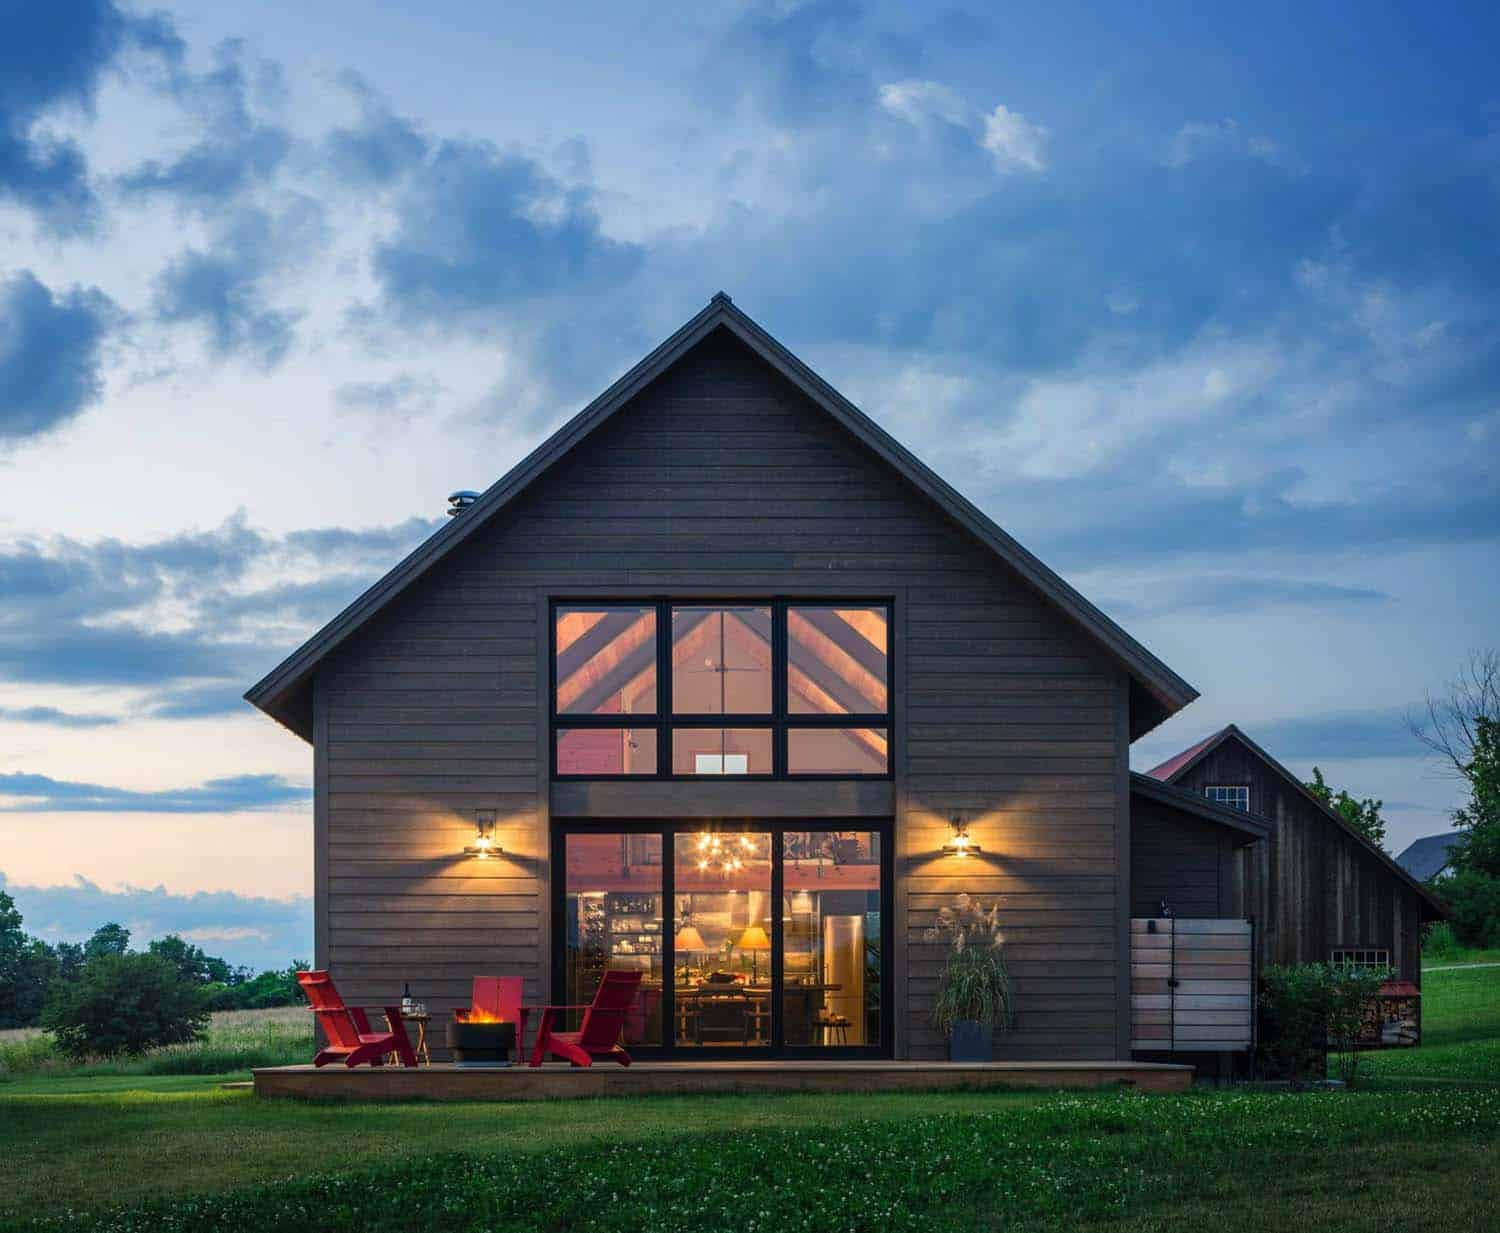 Small and cozy modern barn house getaway in vermont for Barn house designs